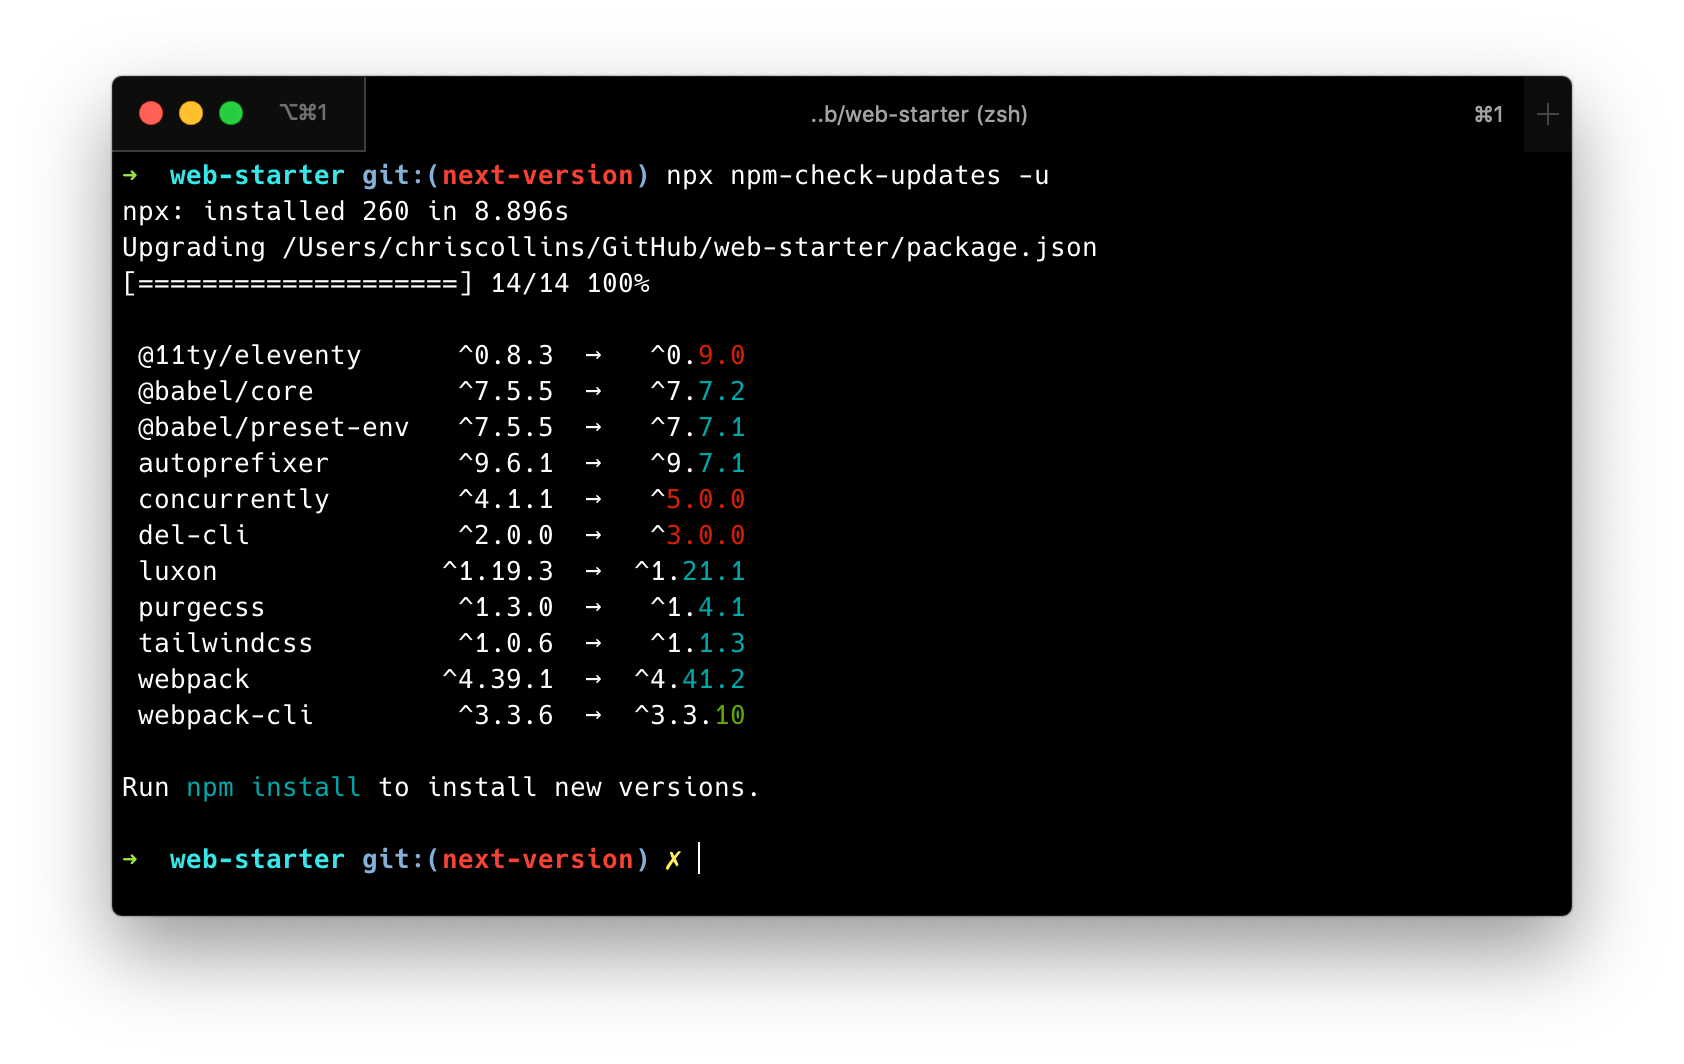 Terminal showing command being executed